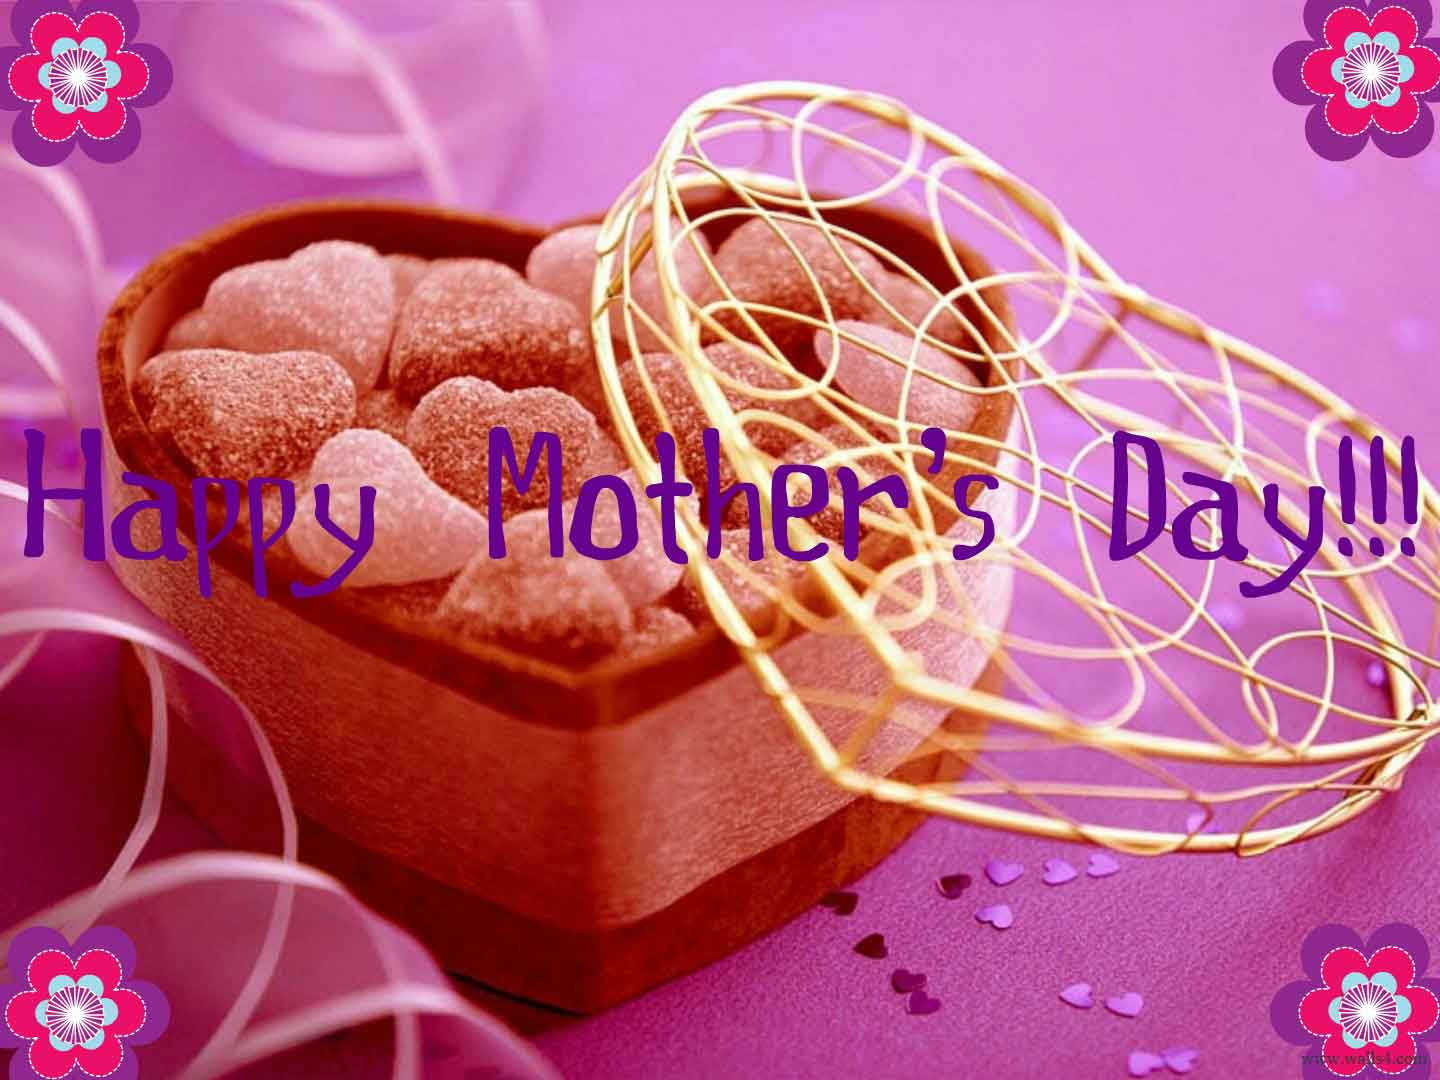 Happy Mothers Day Wallpapers Free Christian Wallpapers